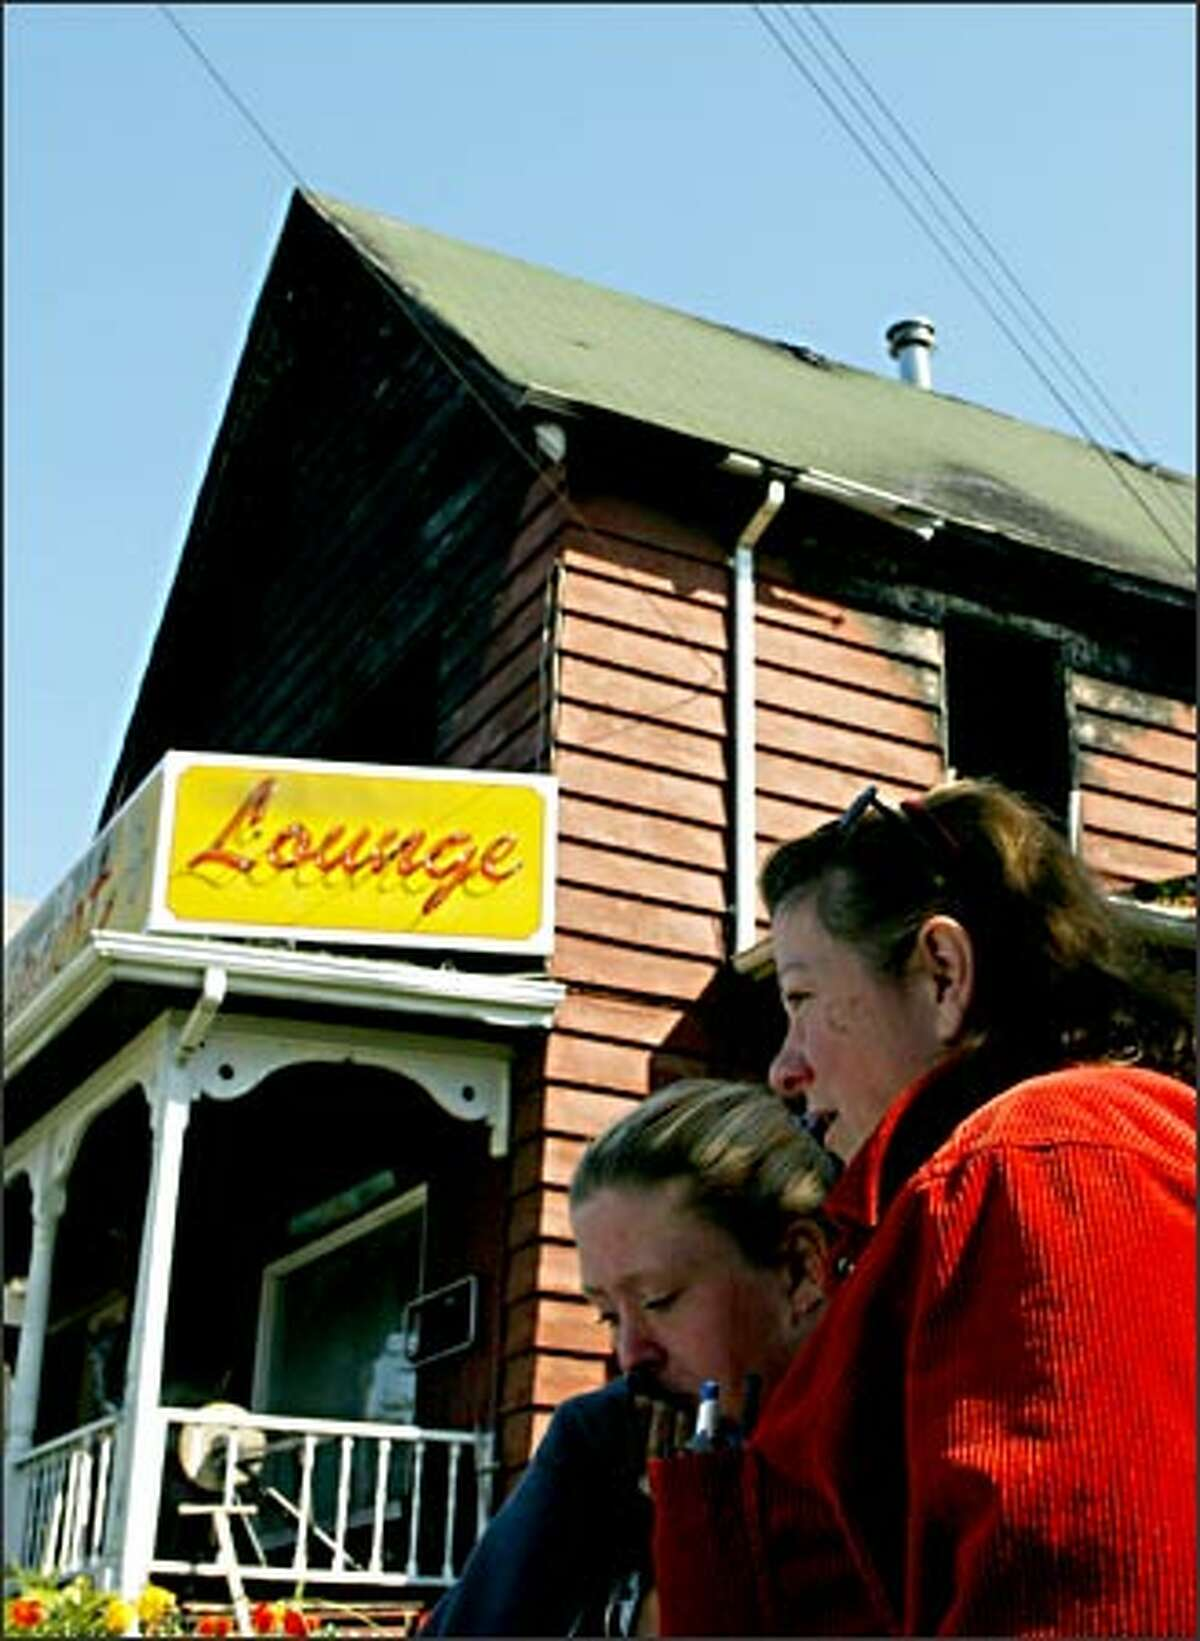 A relative comforts Sondra McCutchan, right, in front of the Cabbage Patch Restaurant in Snohomish Friday. Sondra has owned the restaurant for 26 years.